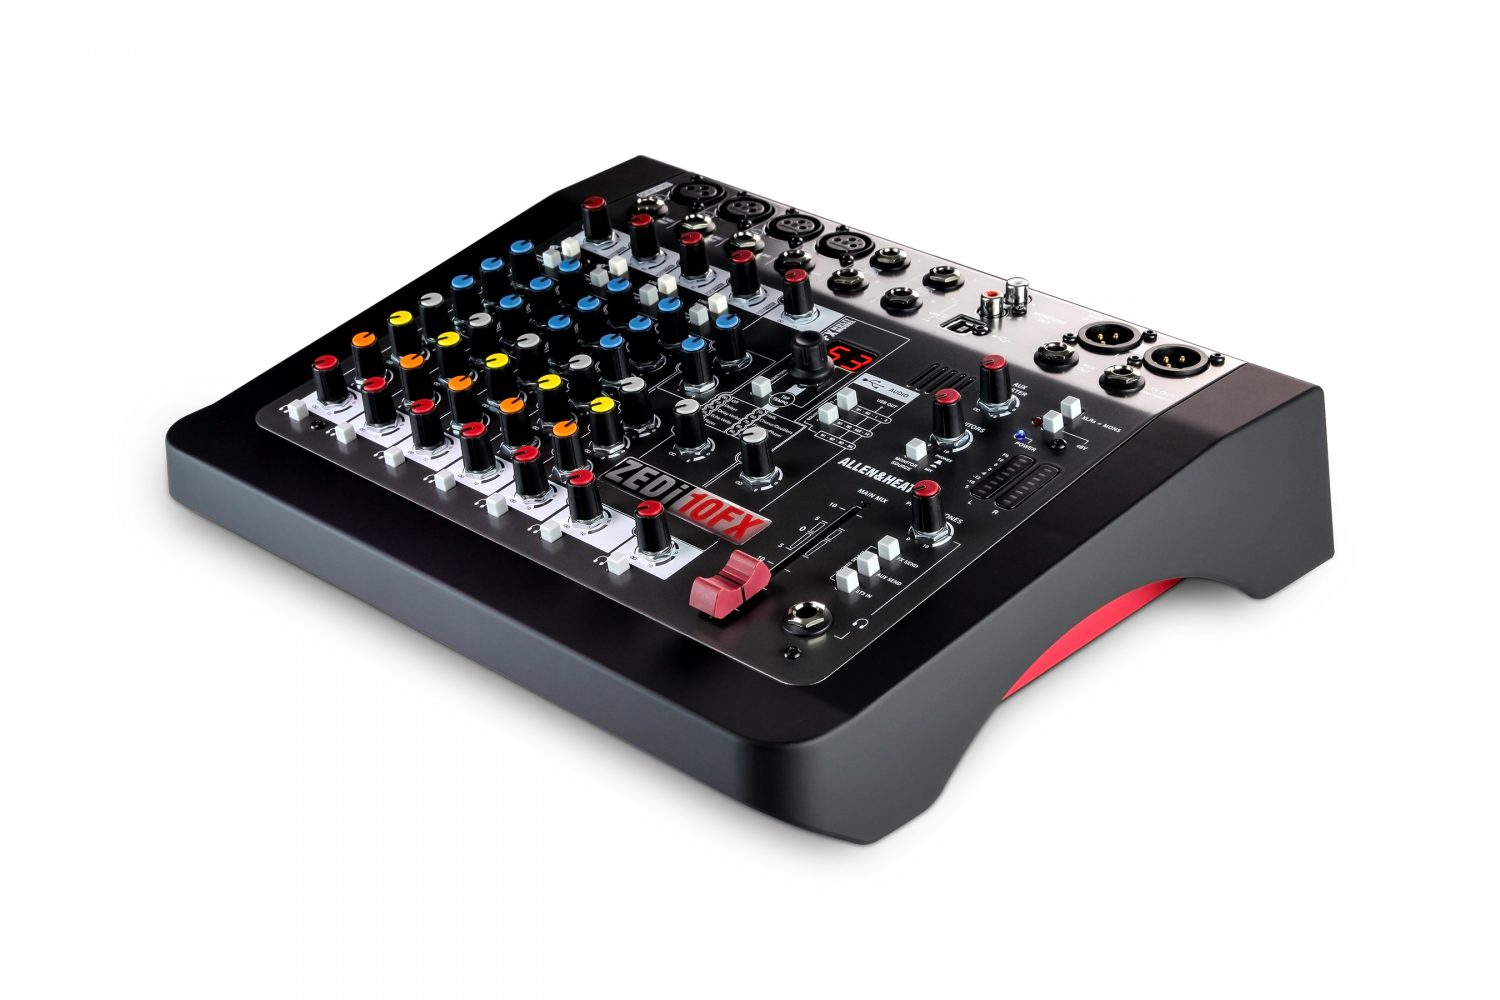 allen heath zedi 10fx mixer usb audio interface with effects free shipping. Black Bedroom Furniture Sets. Home Design Ideas